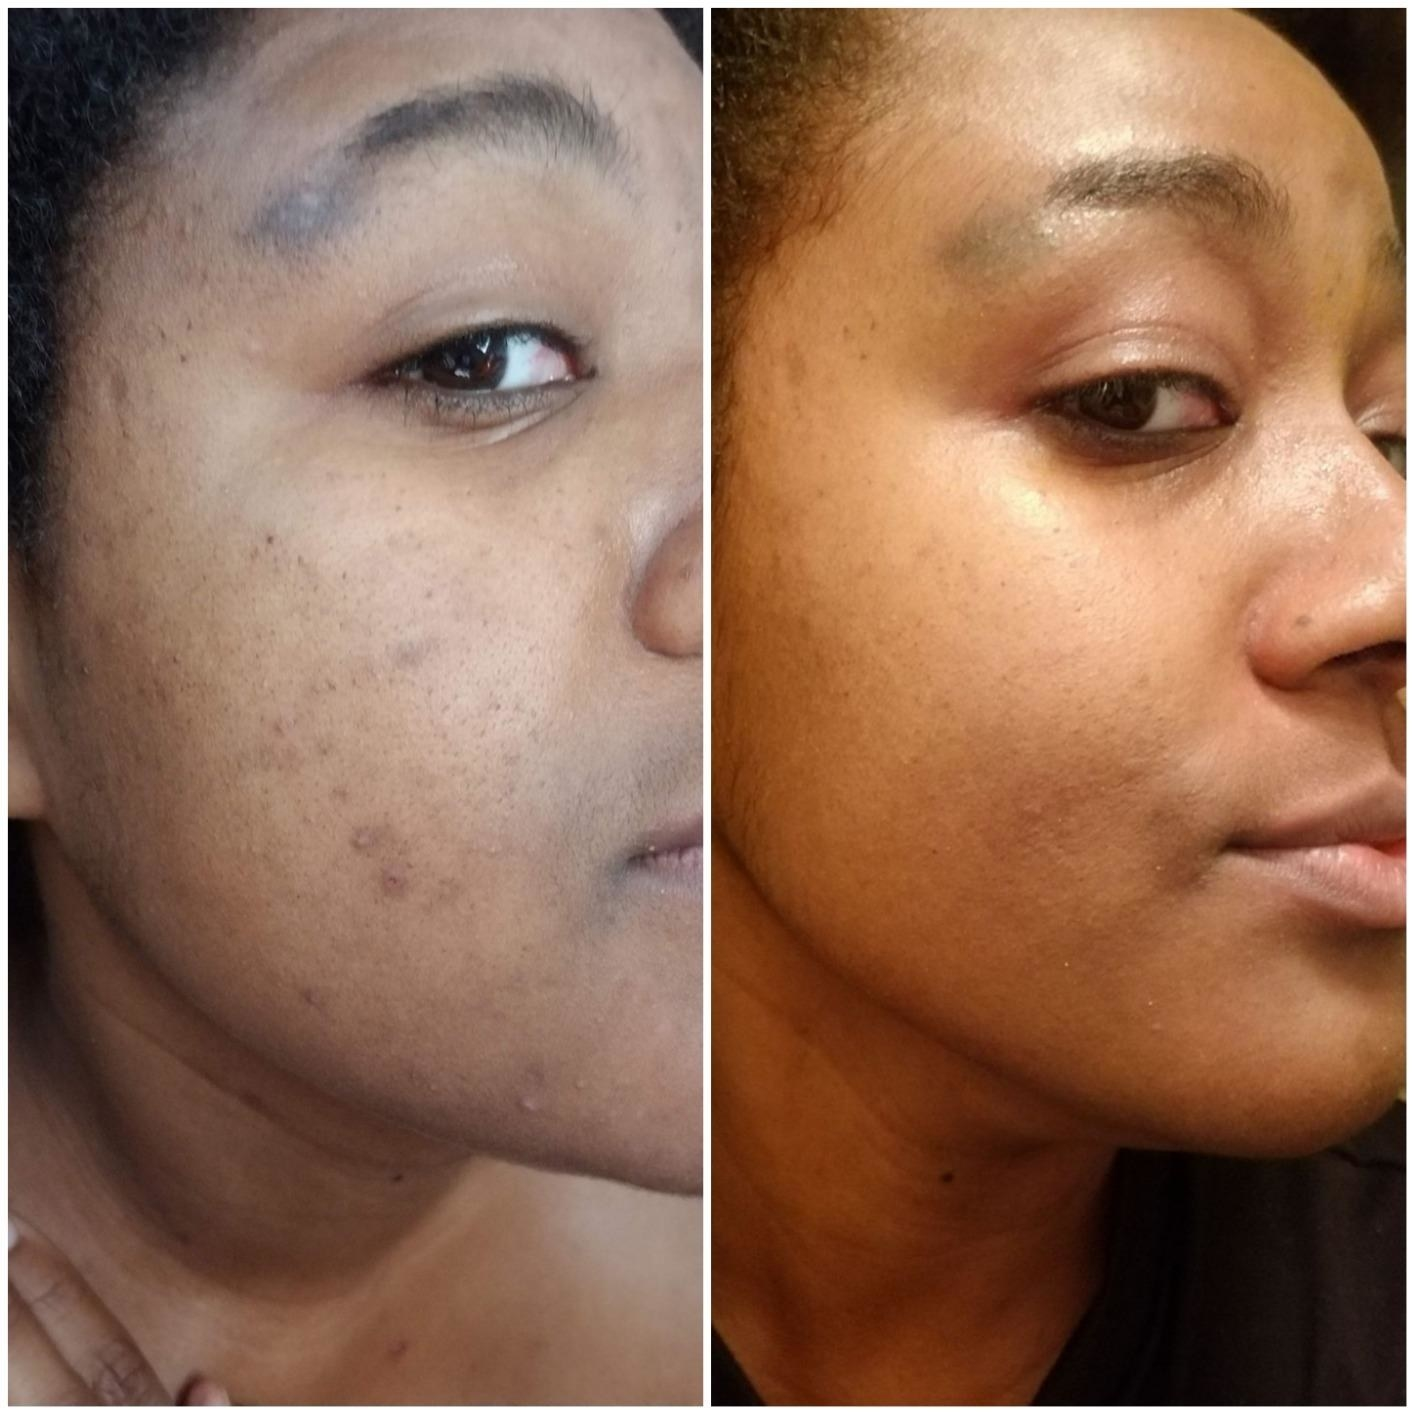 on the left a reviewer with some breakouts, on the right the same face with the breakouts gone